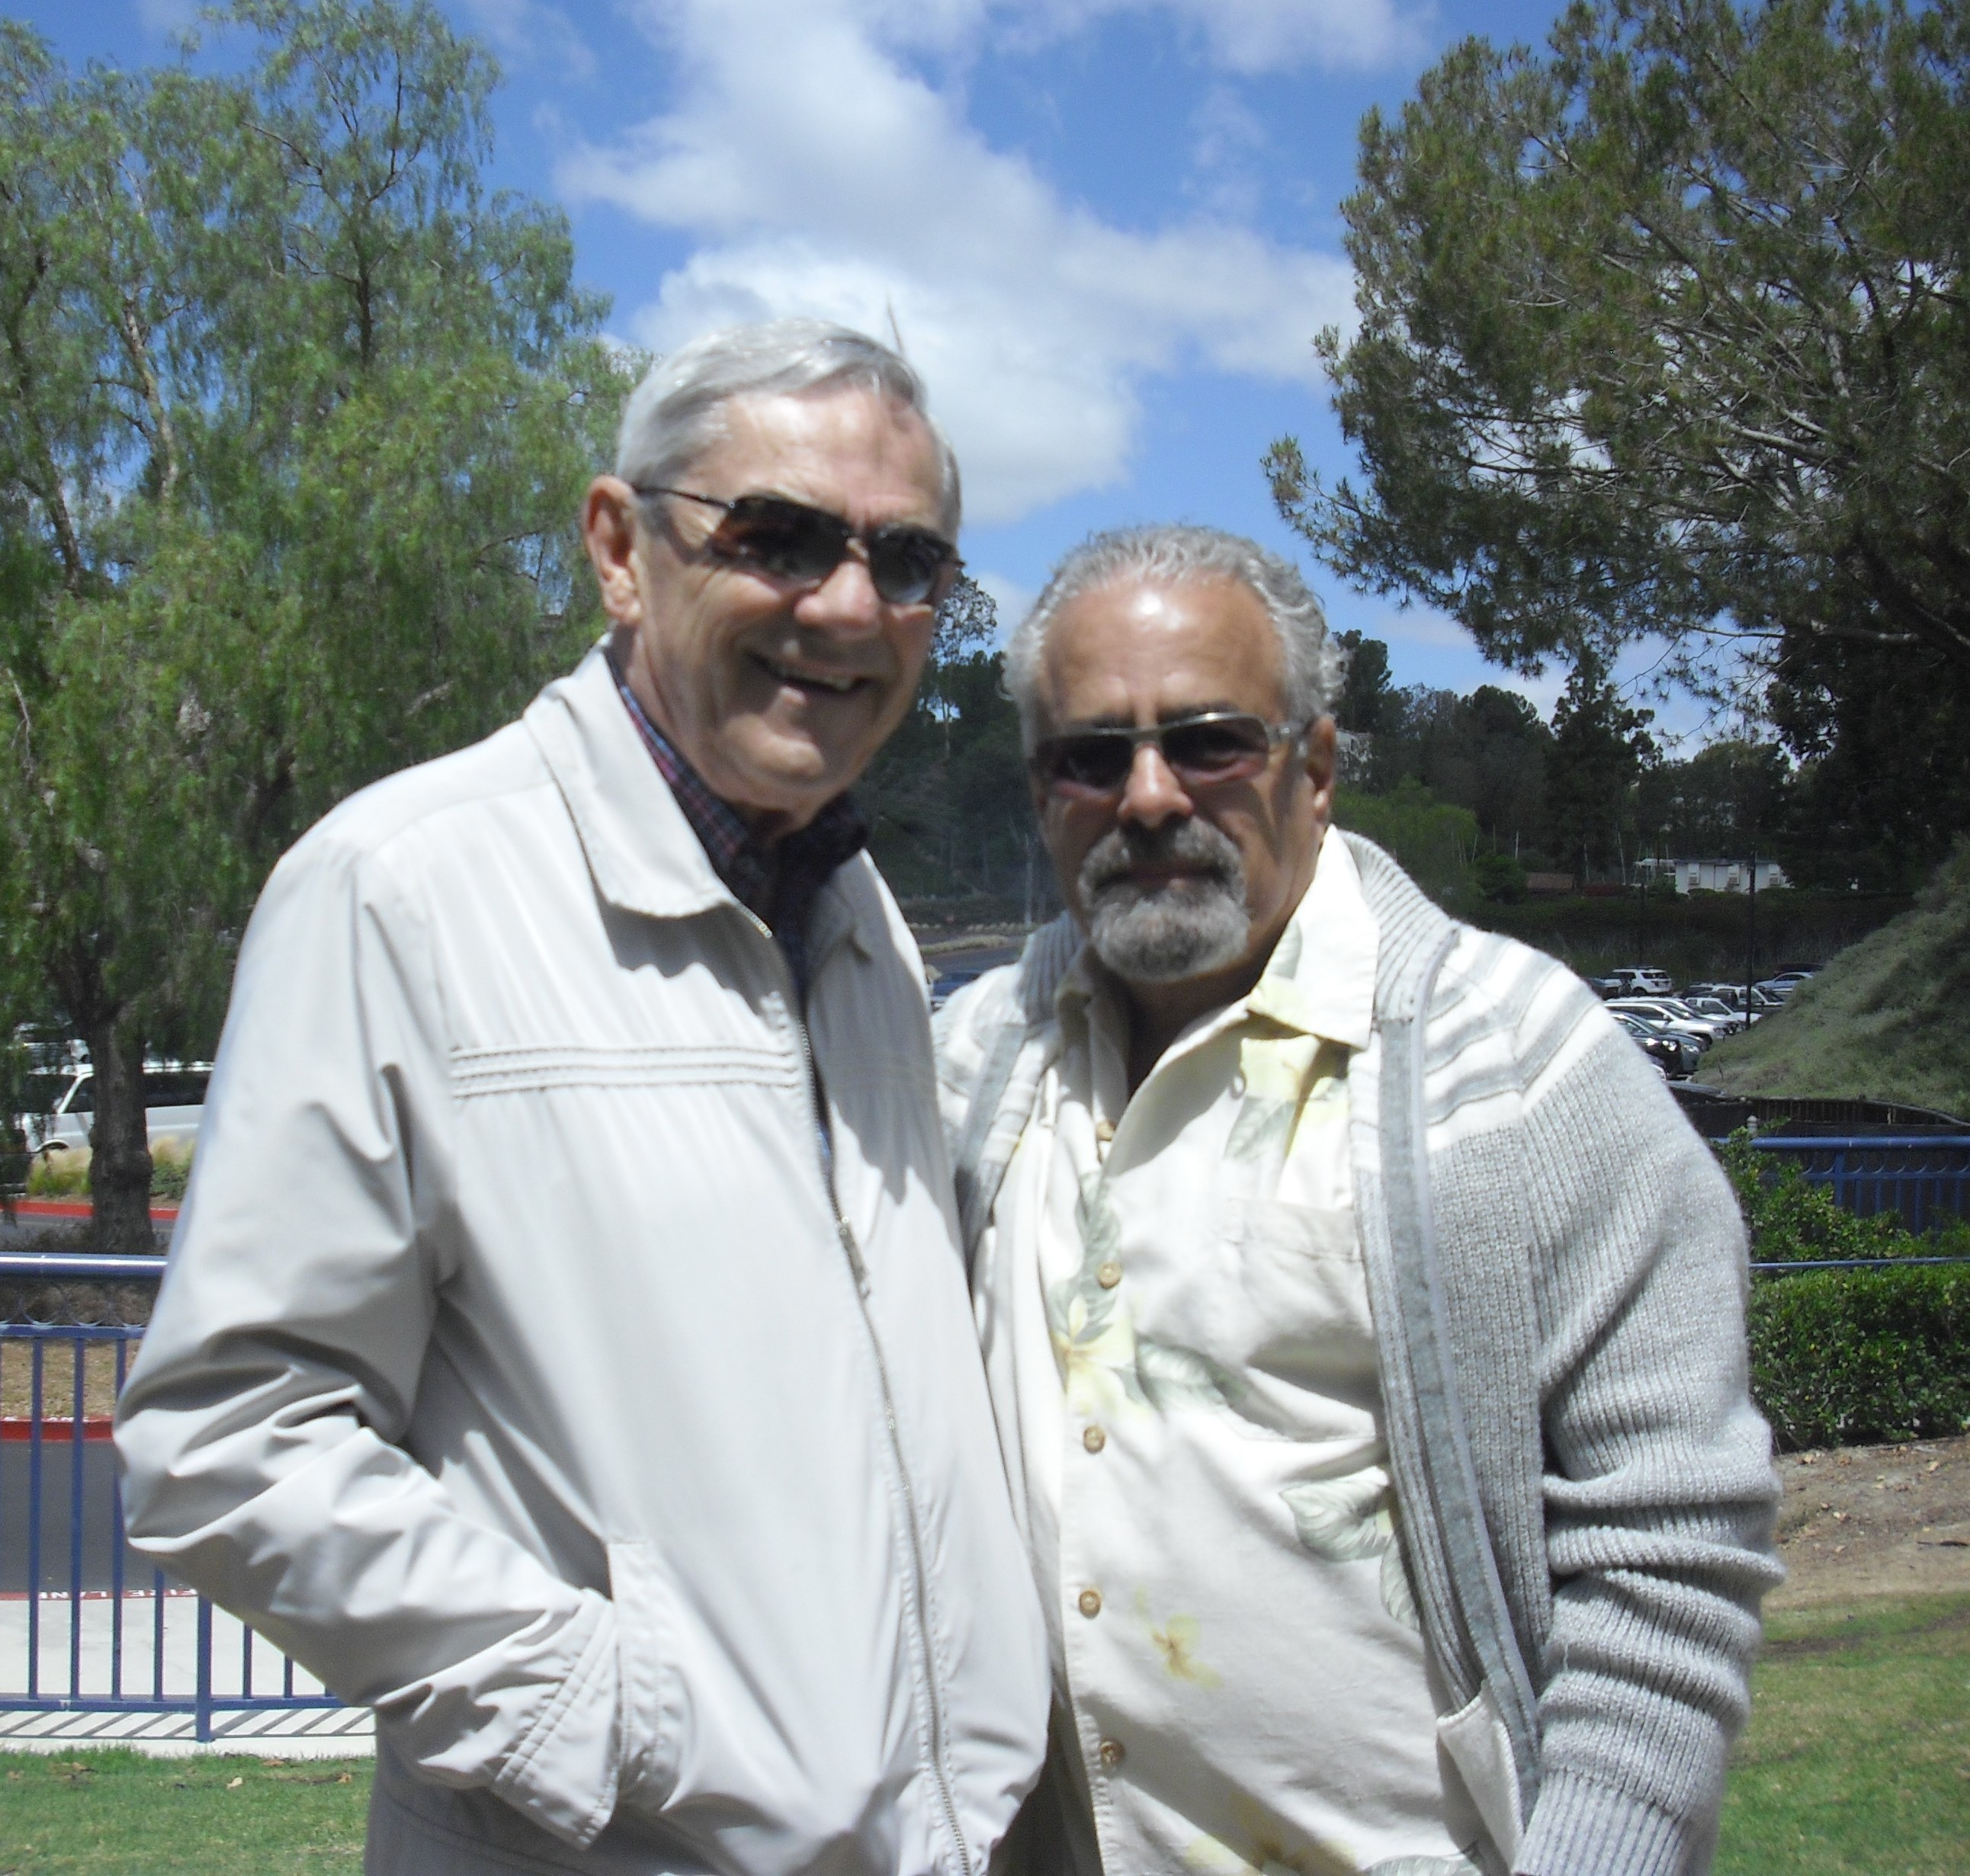 Stan Newton and Vincent Caporusso